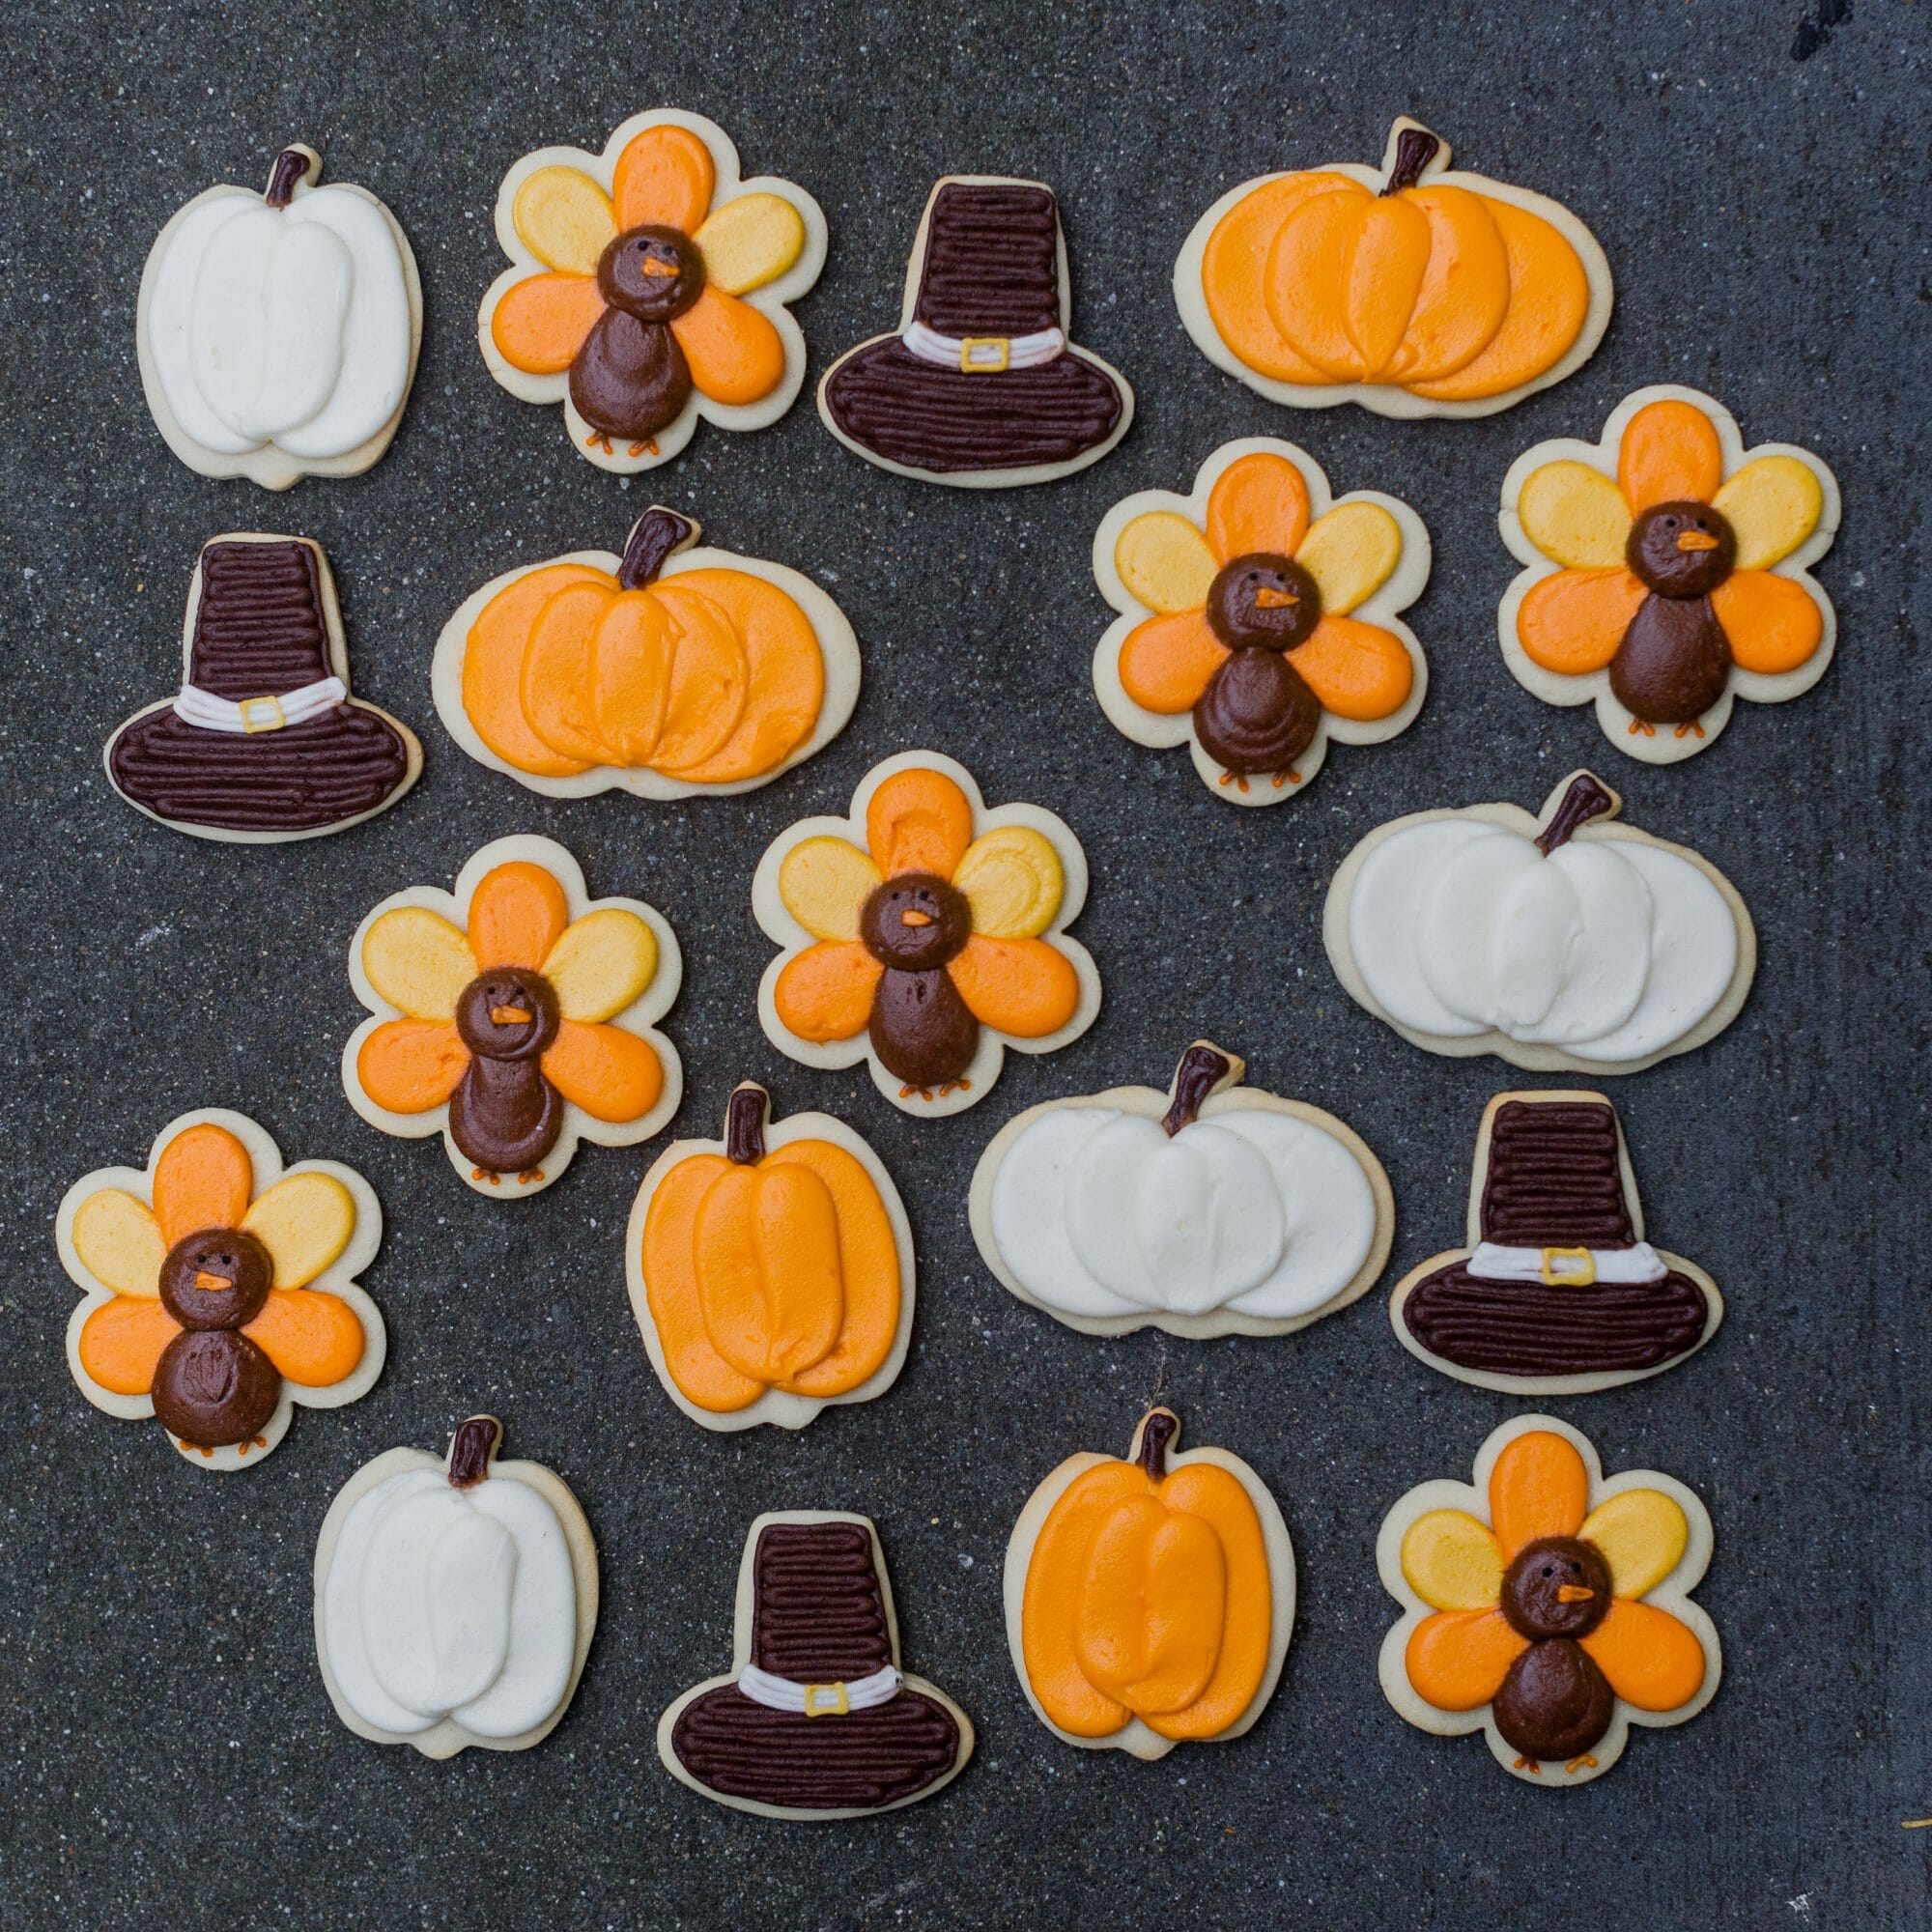 Thanksgiving at Jenny Cookies Bake Shop || JennyCookies.com #thanksgiving #thanksgivingcookies #decoratedcookies #jennycookies